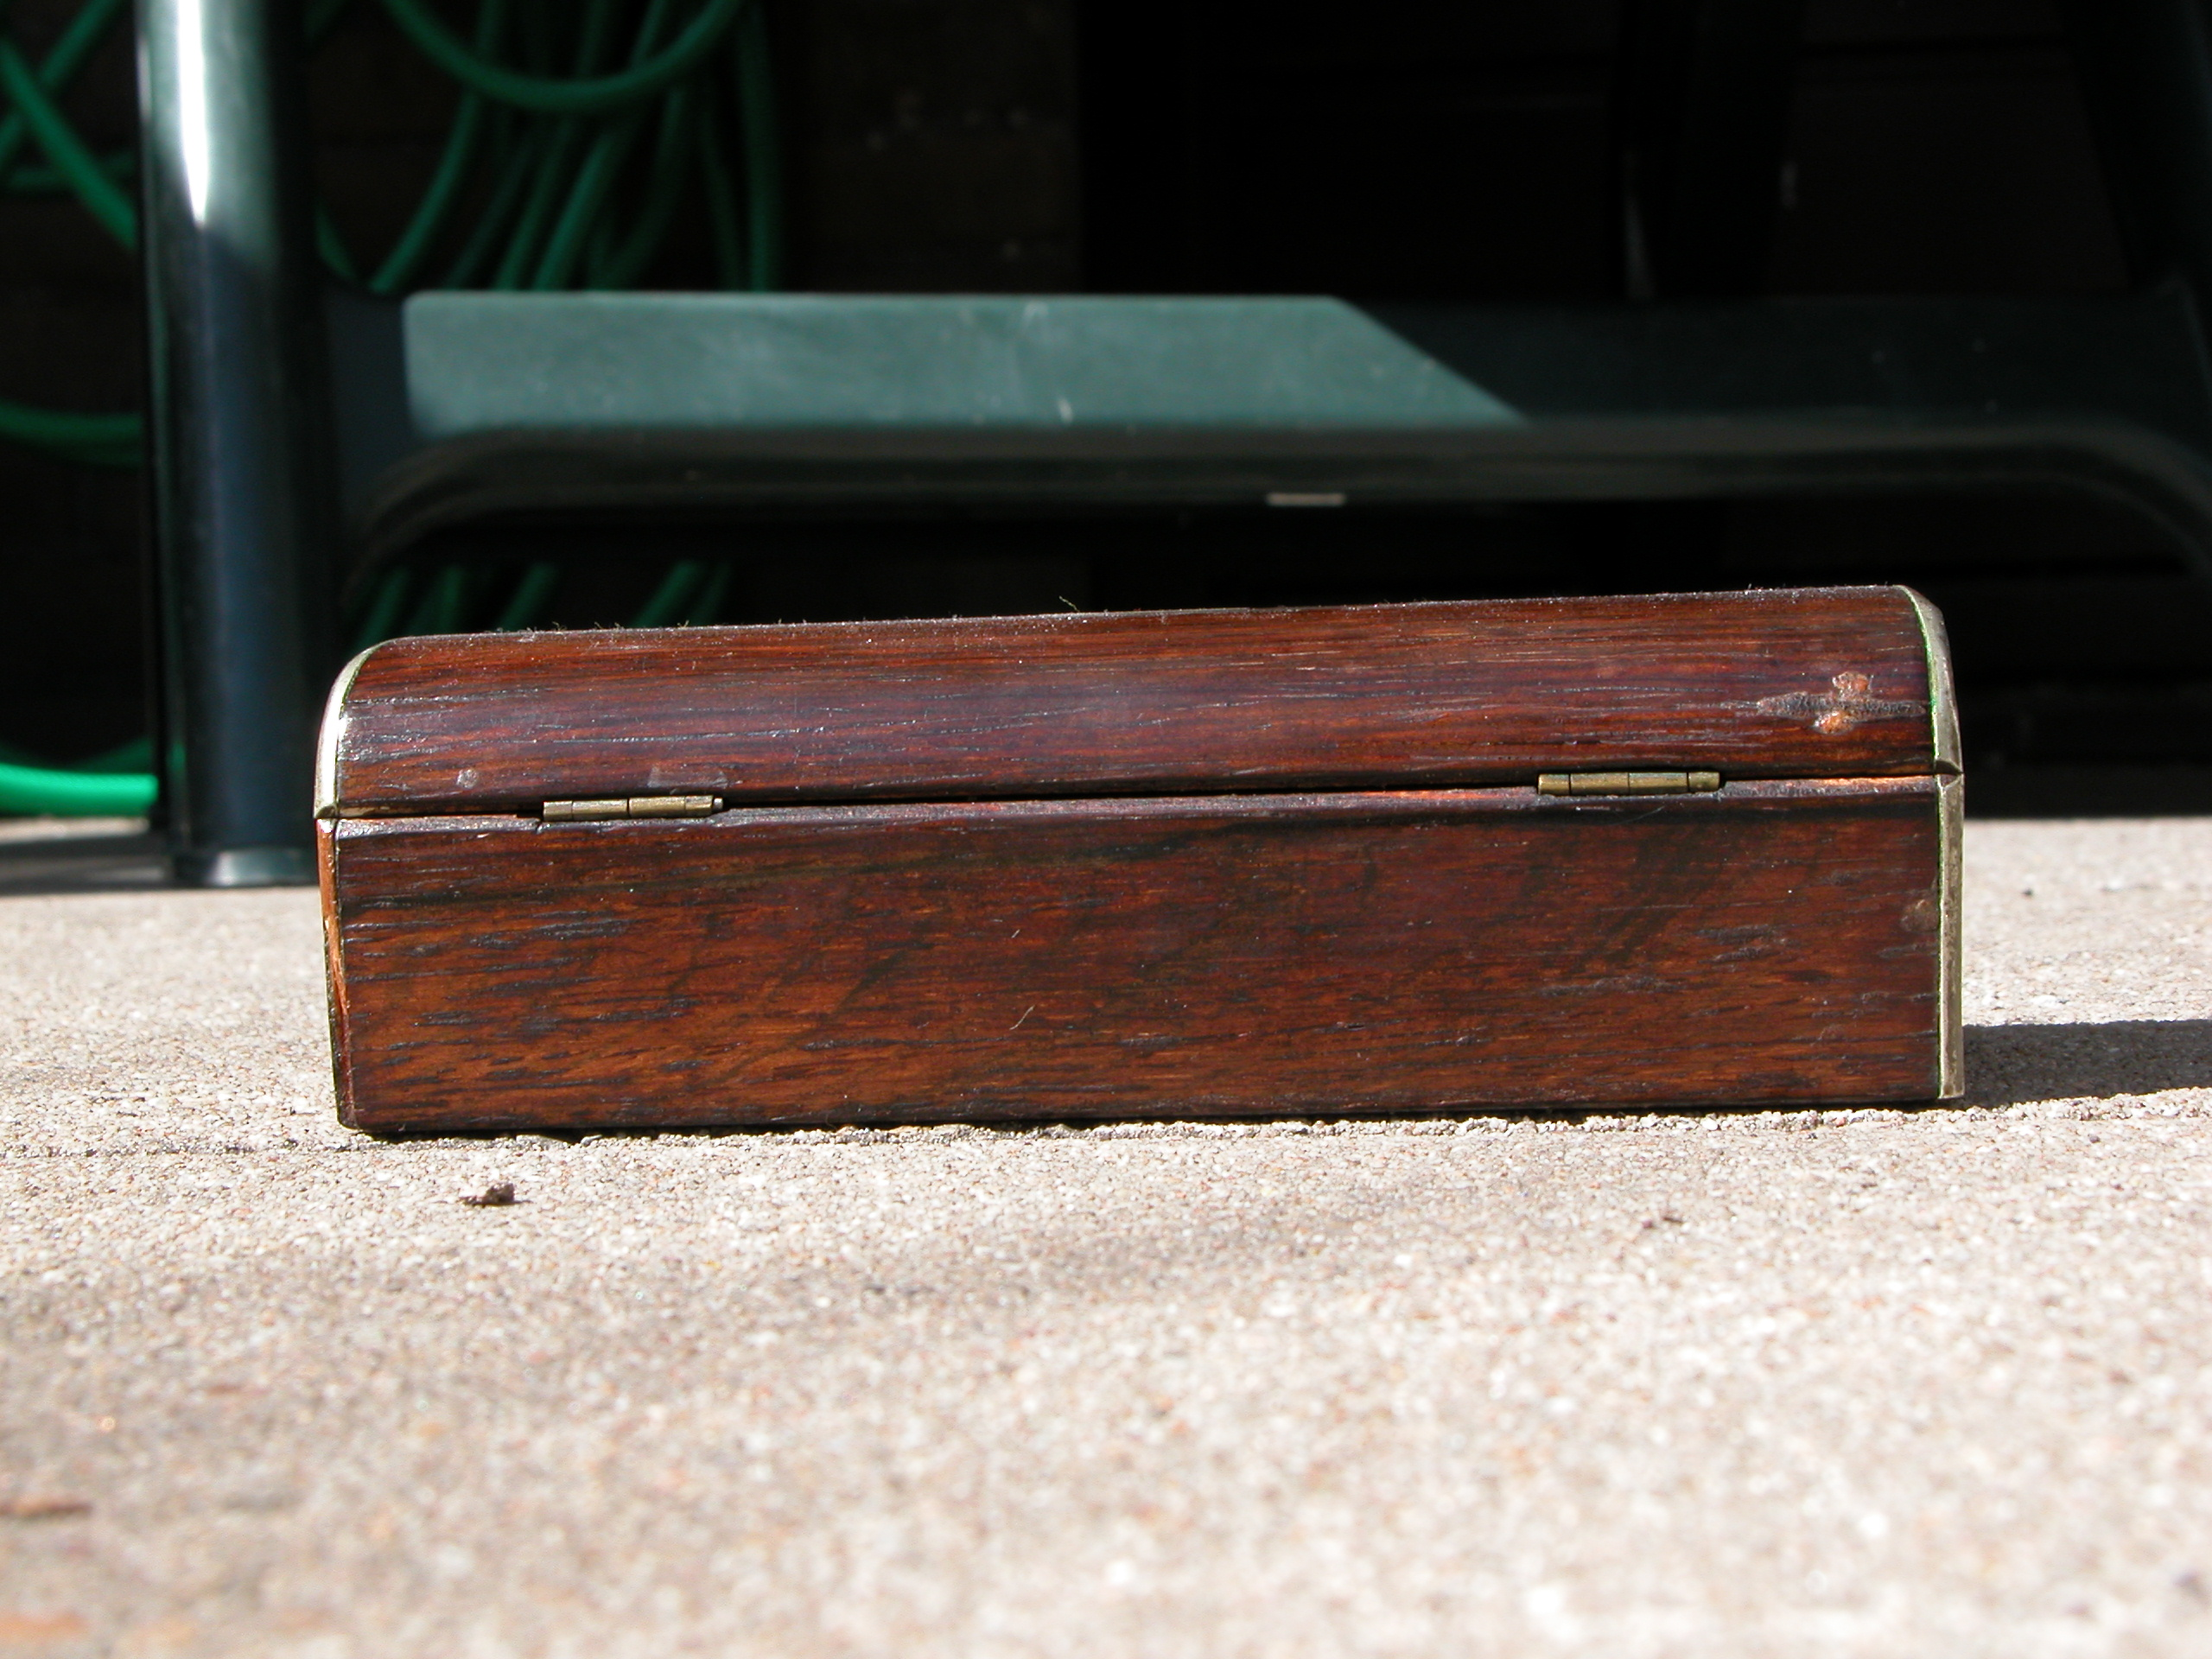 box wooden small chest treasure hinges for spoons